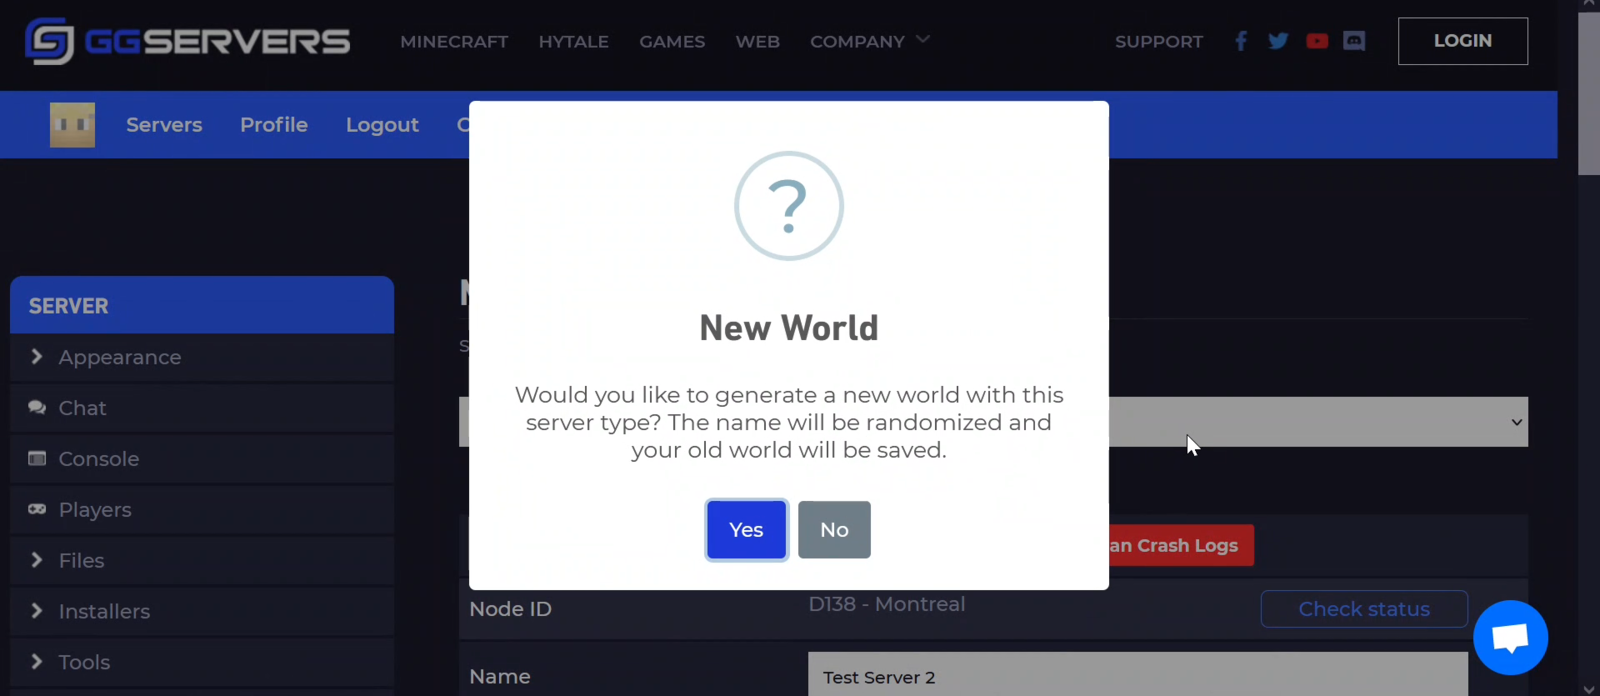 Generate a New World